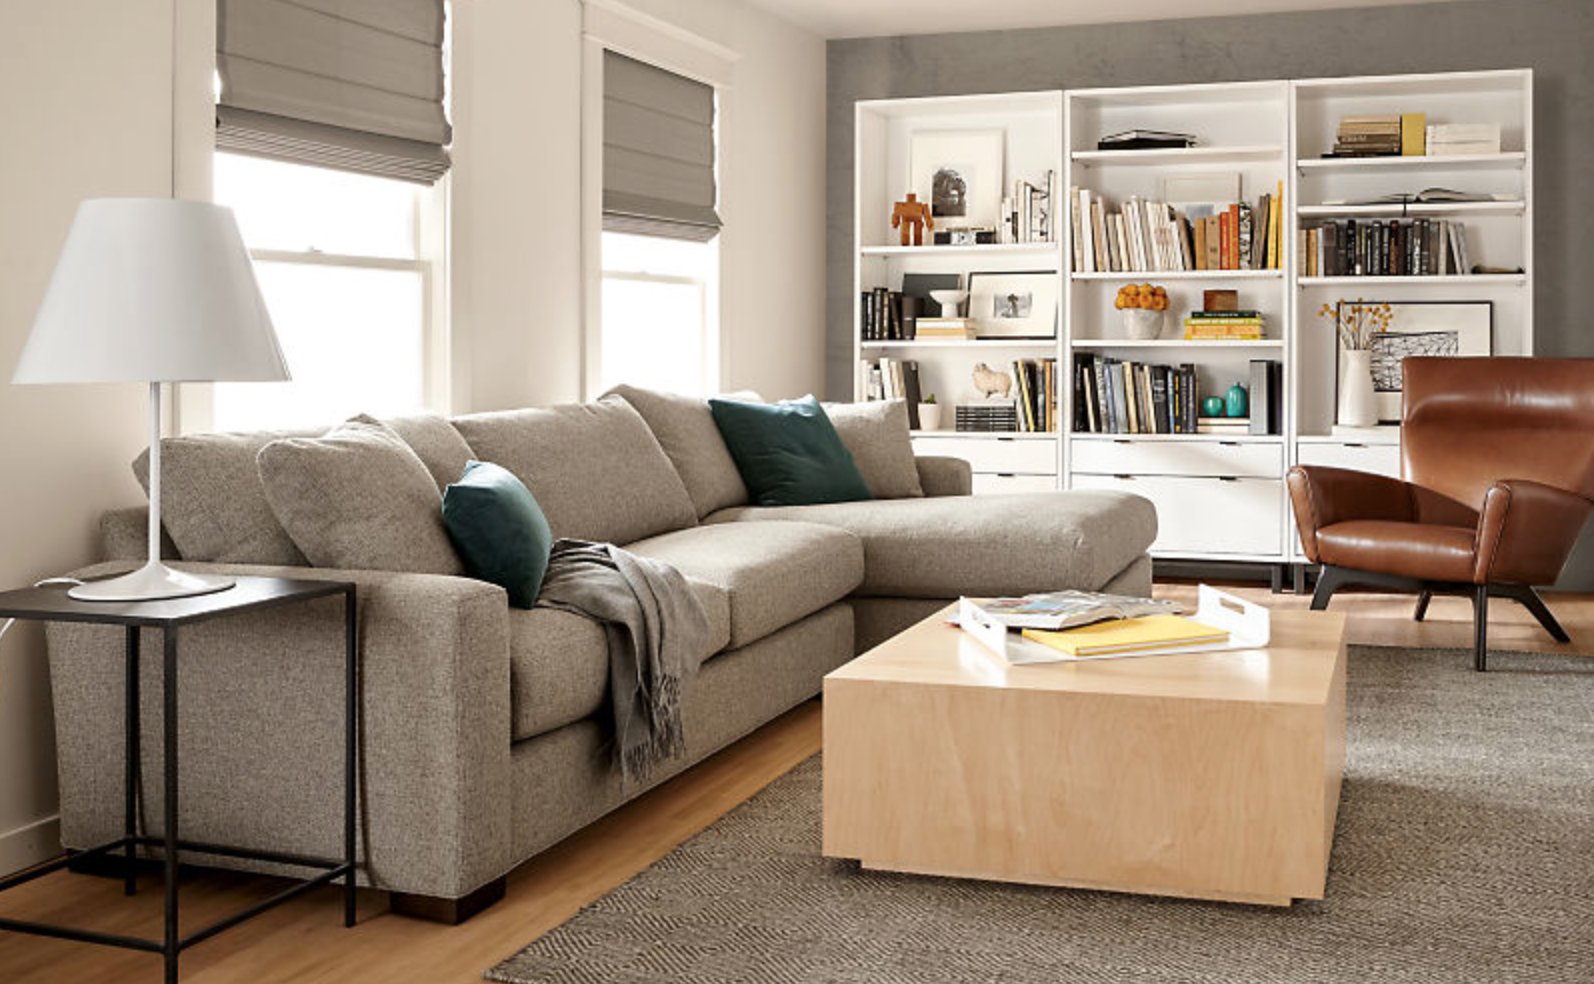 Room And Board Metro Sleeper Sofa Flexsteel Sofas Couches In 2018 Pinterest